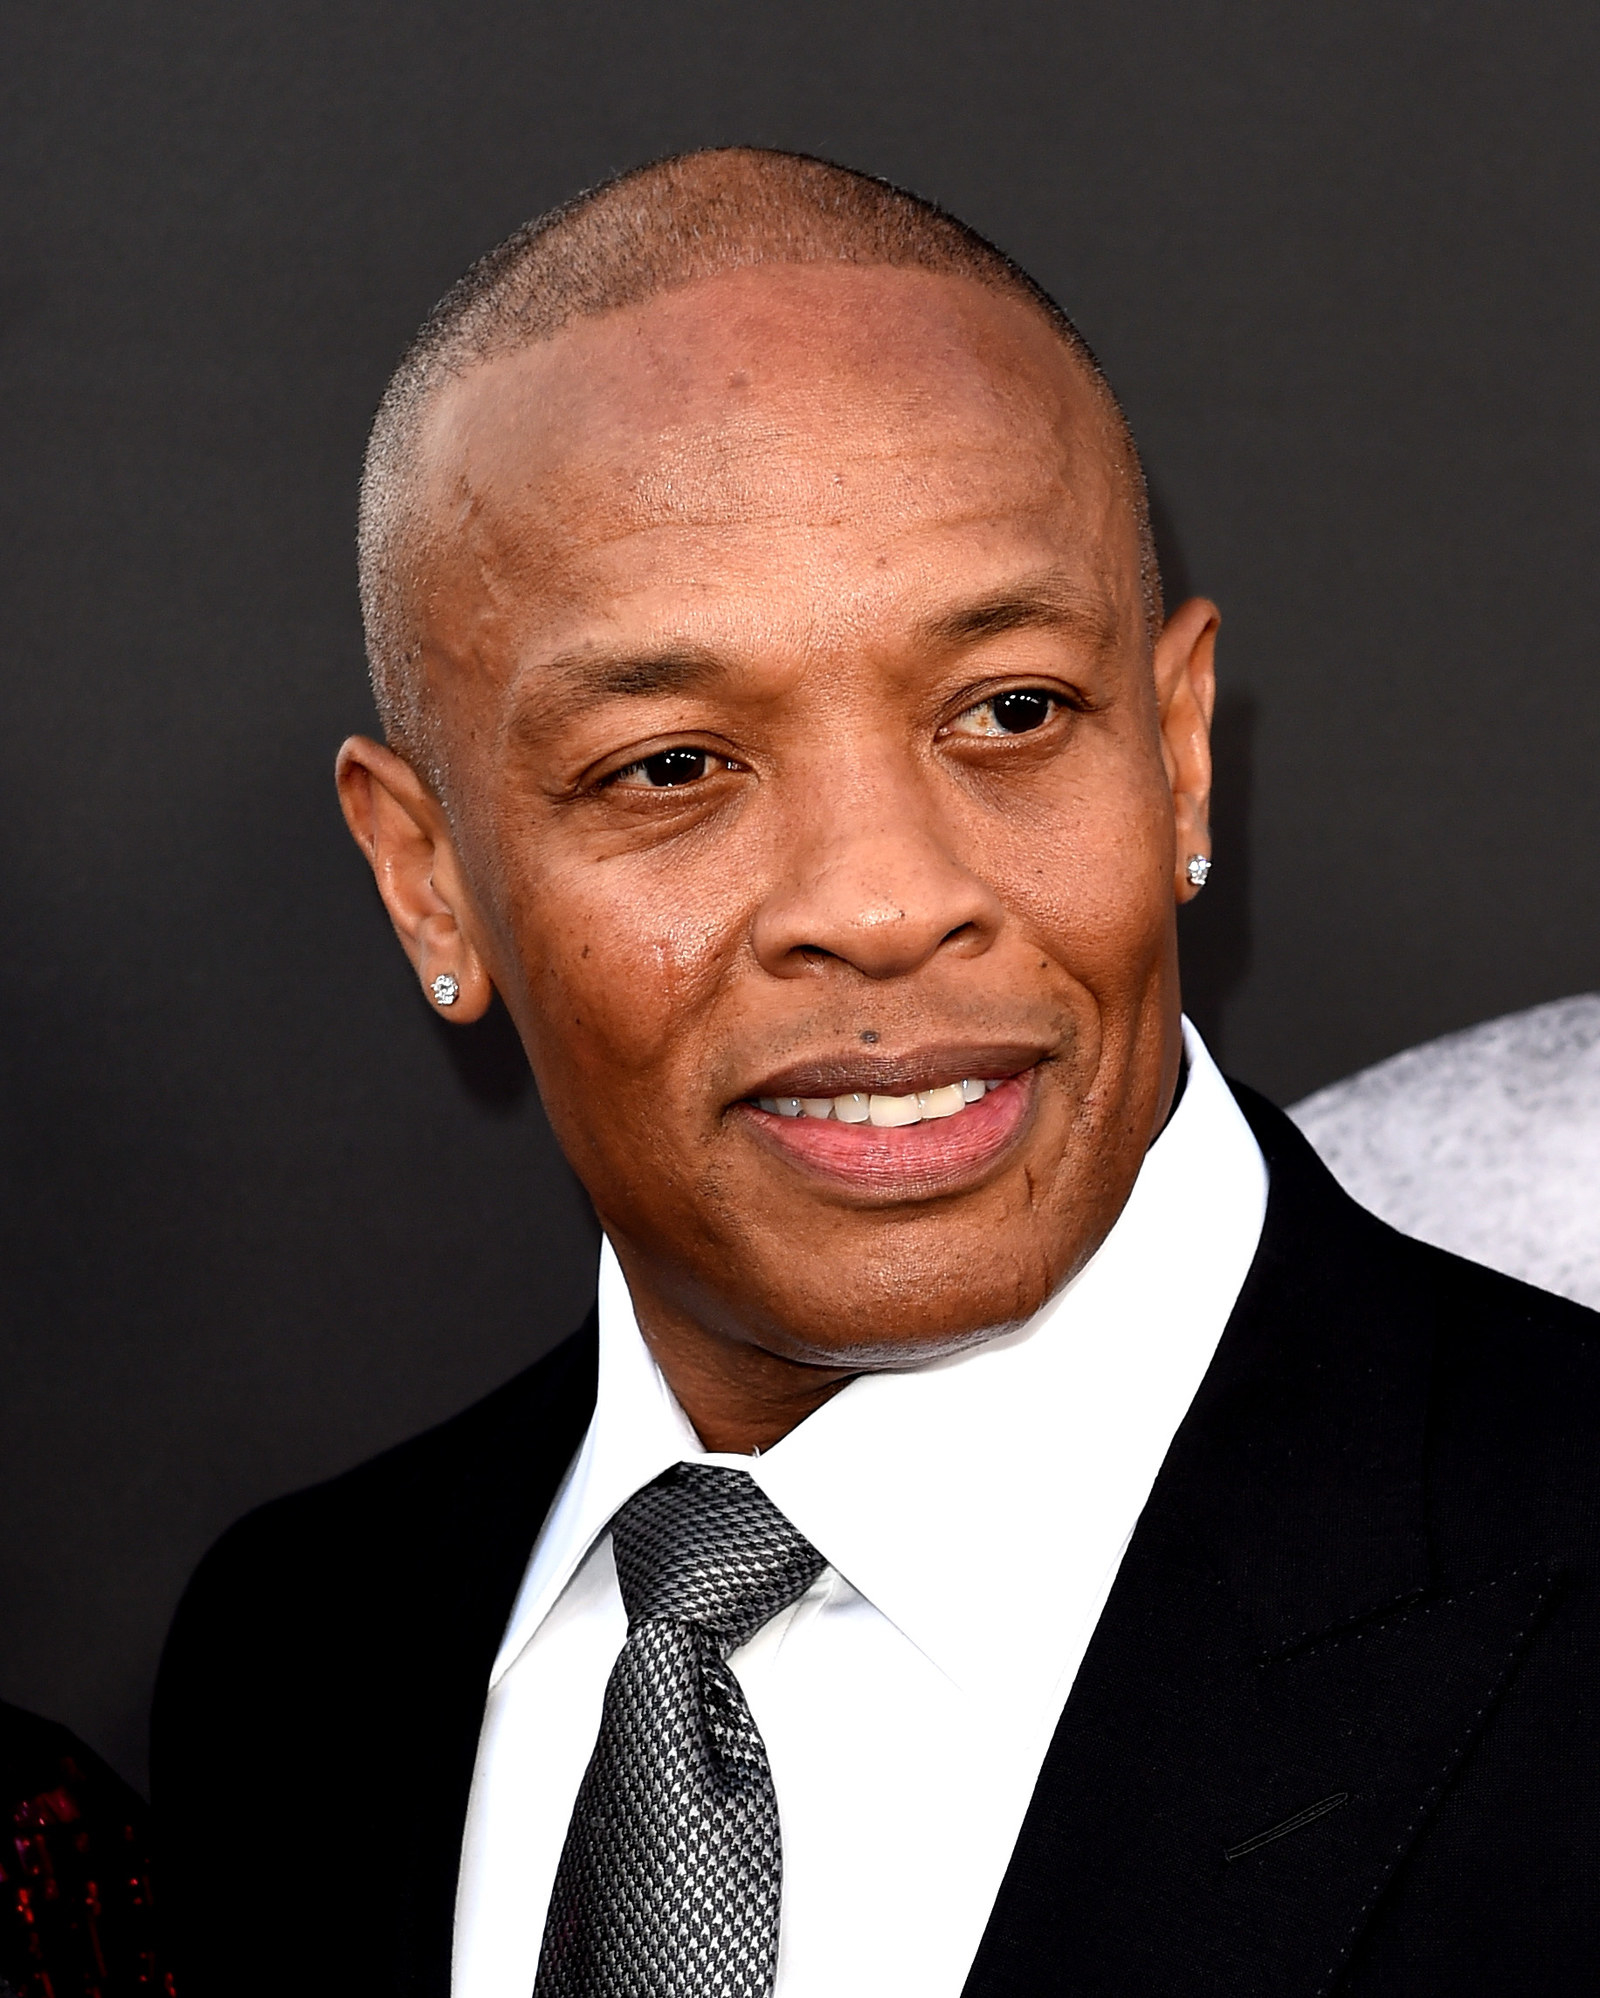 Dr  Dre Just Lost A Long Trademark Battle To A Gynecologist And